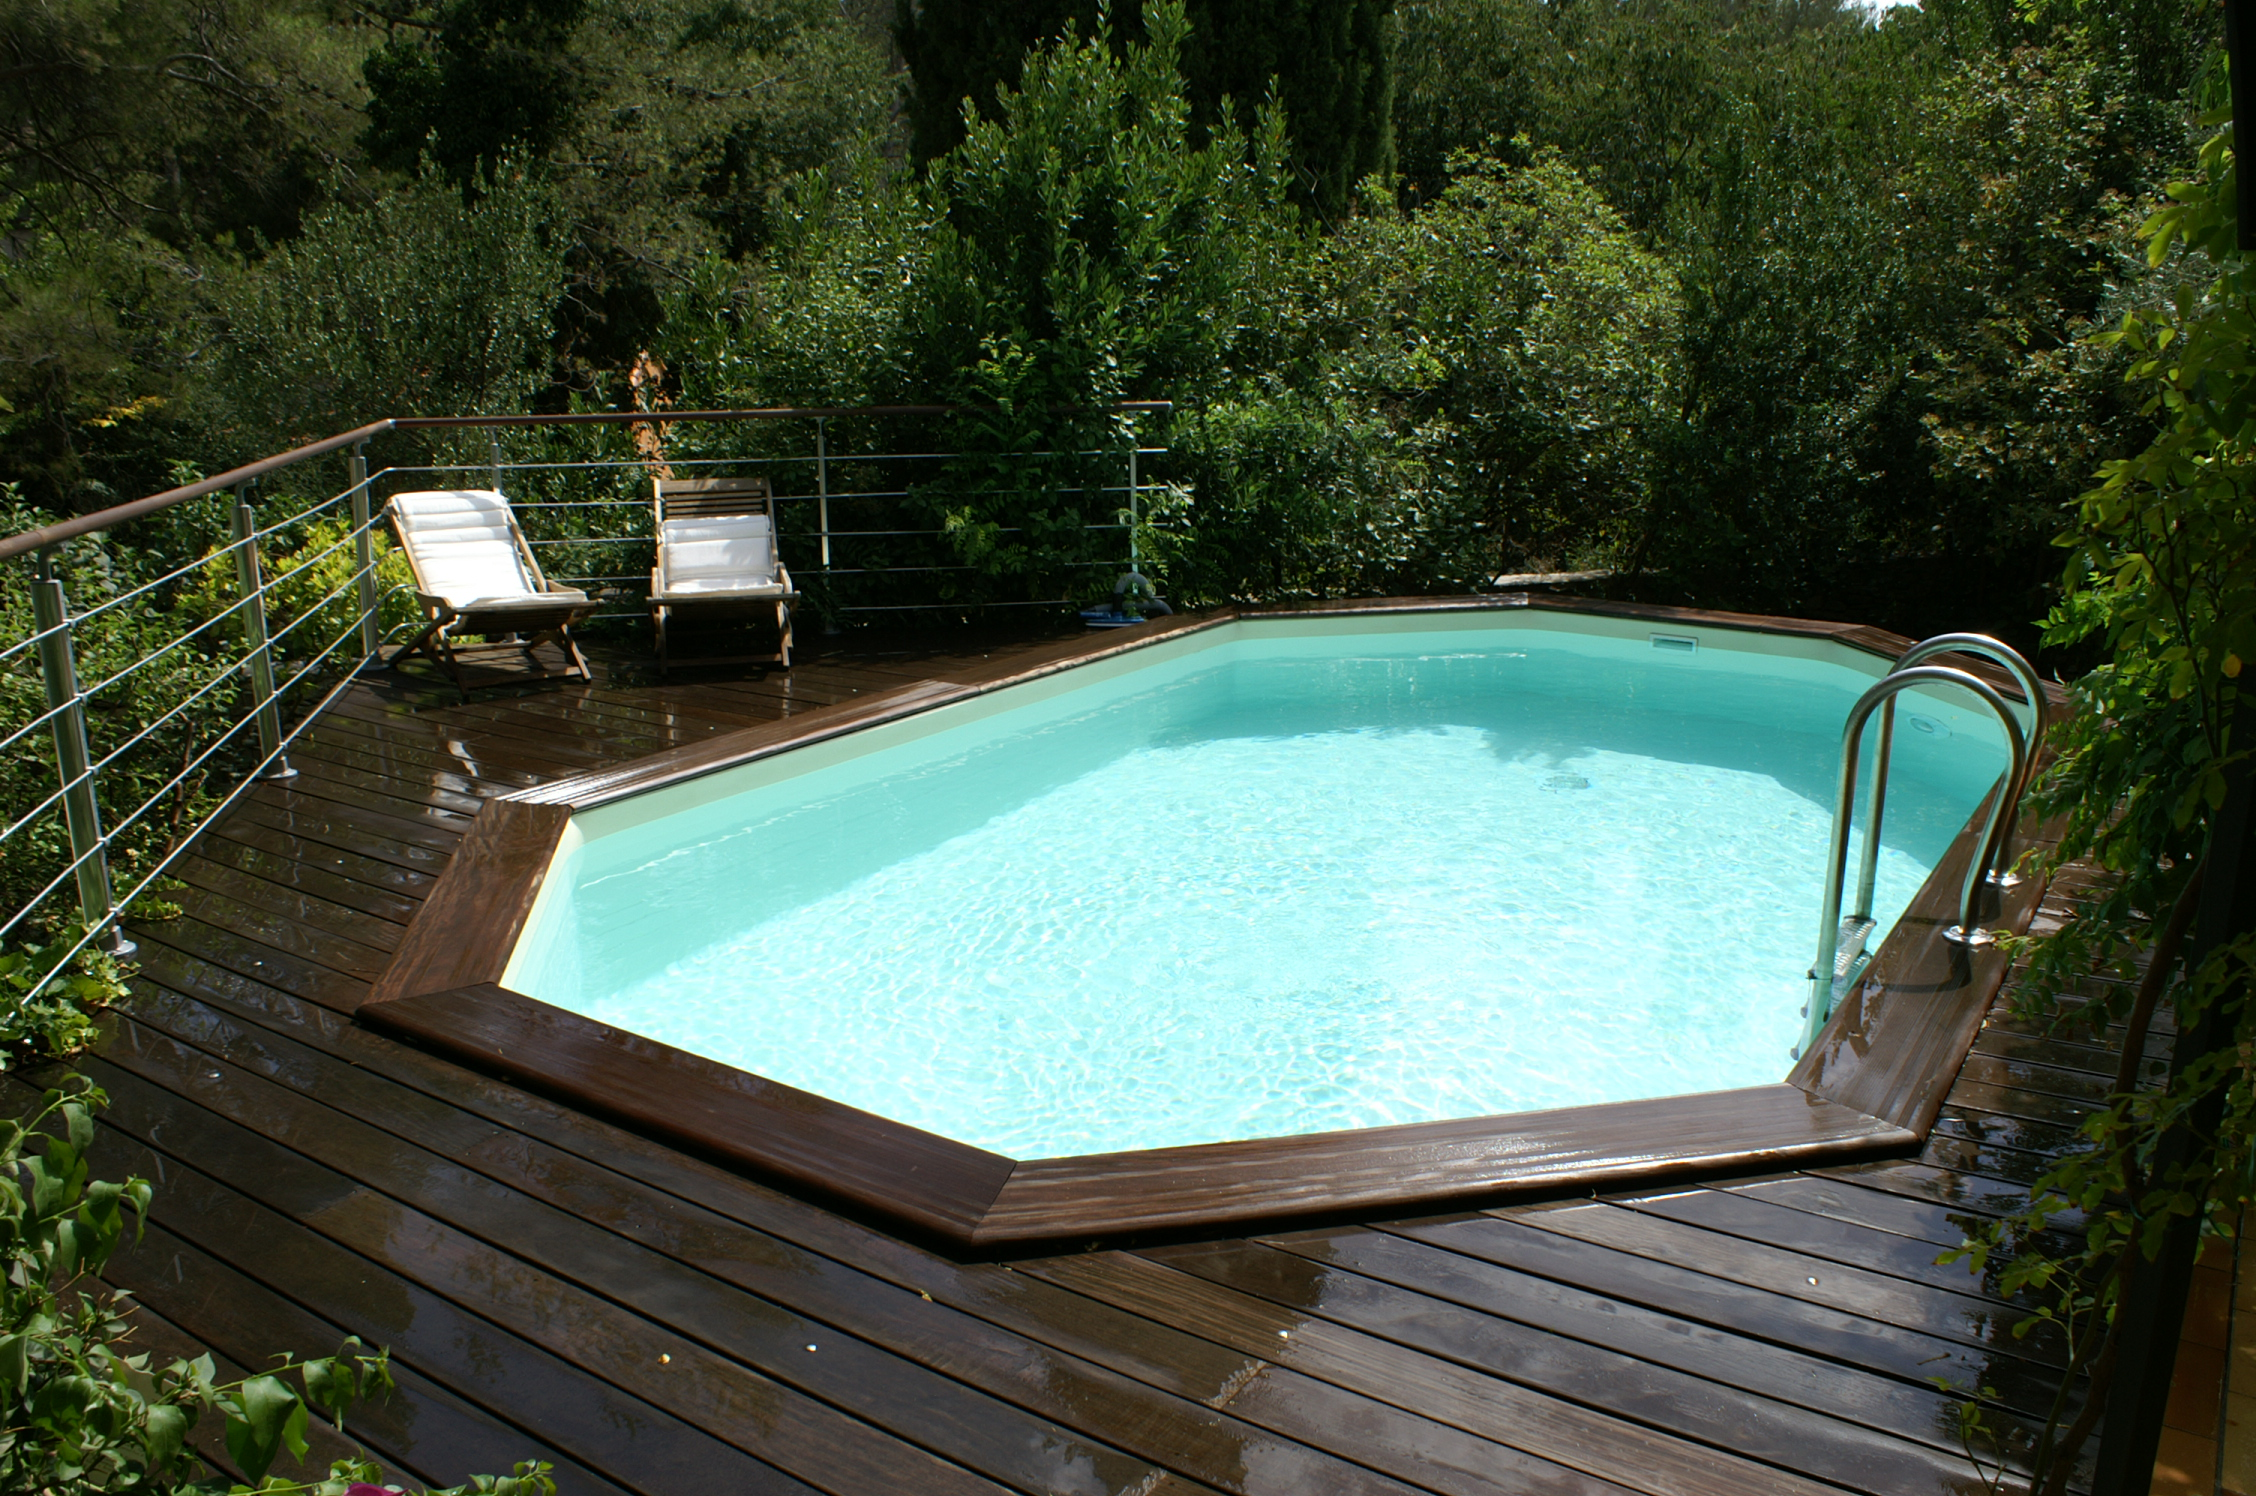 Piscine en kit hors sol piscine en kit hors sol maeva for Kit piscine en bois